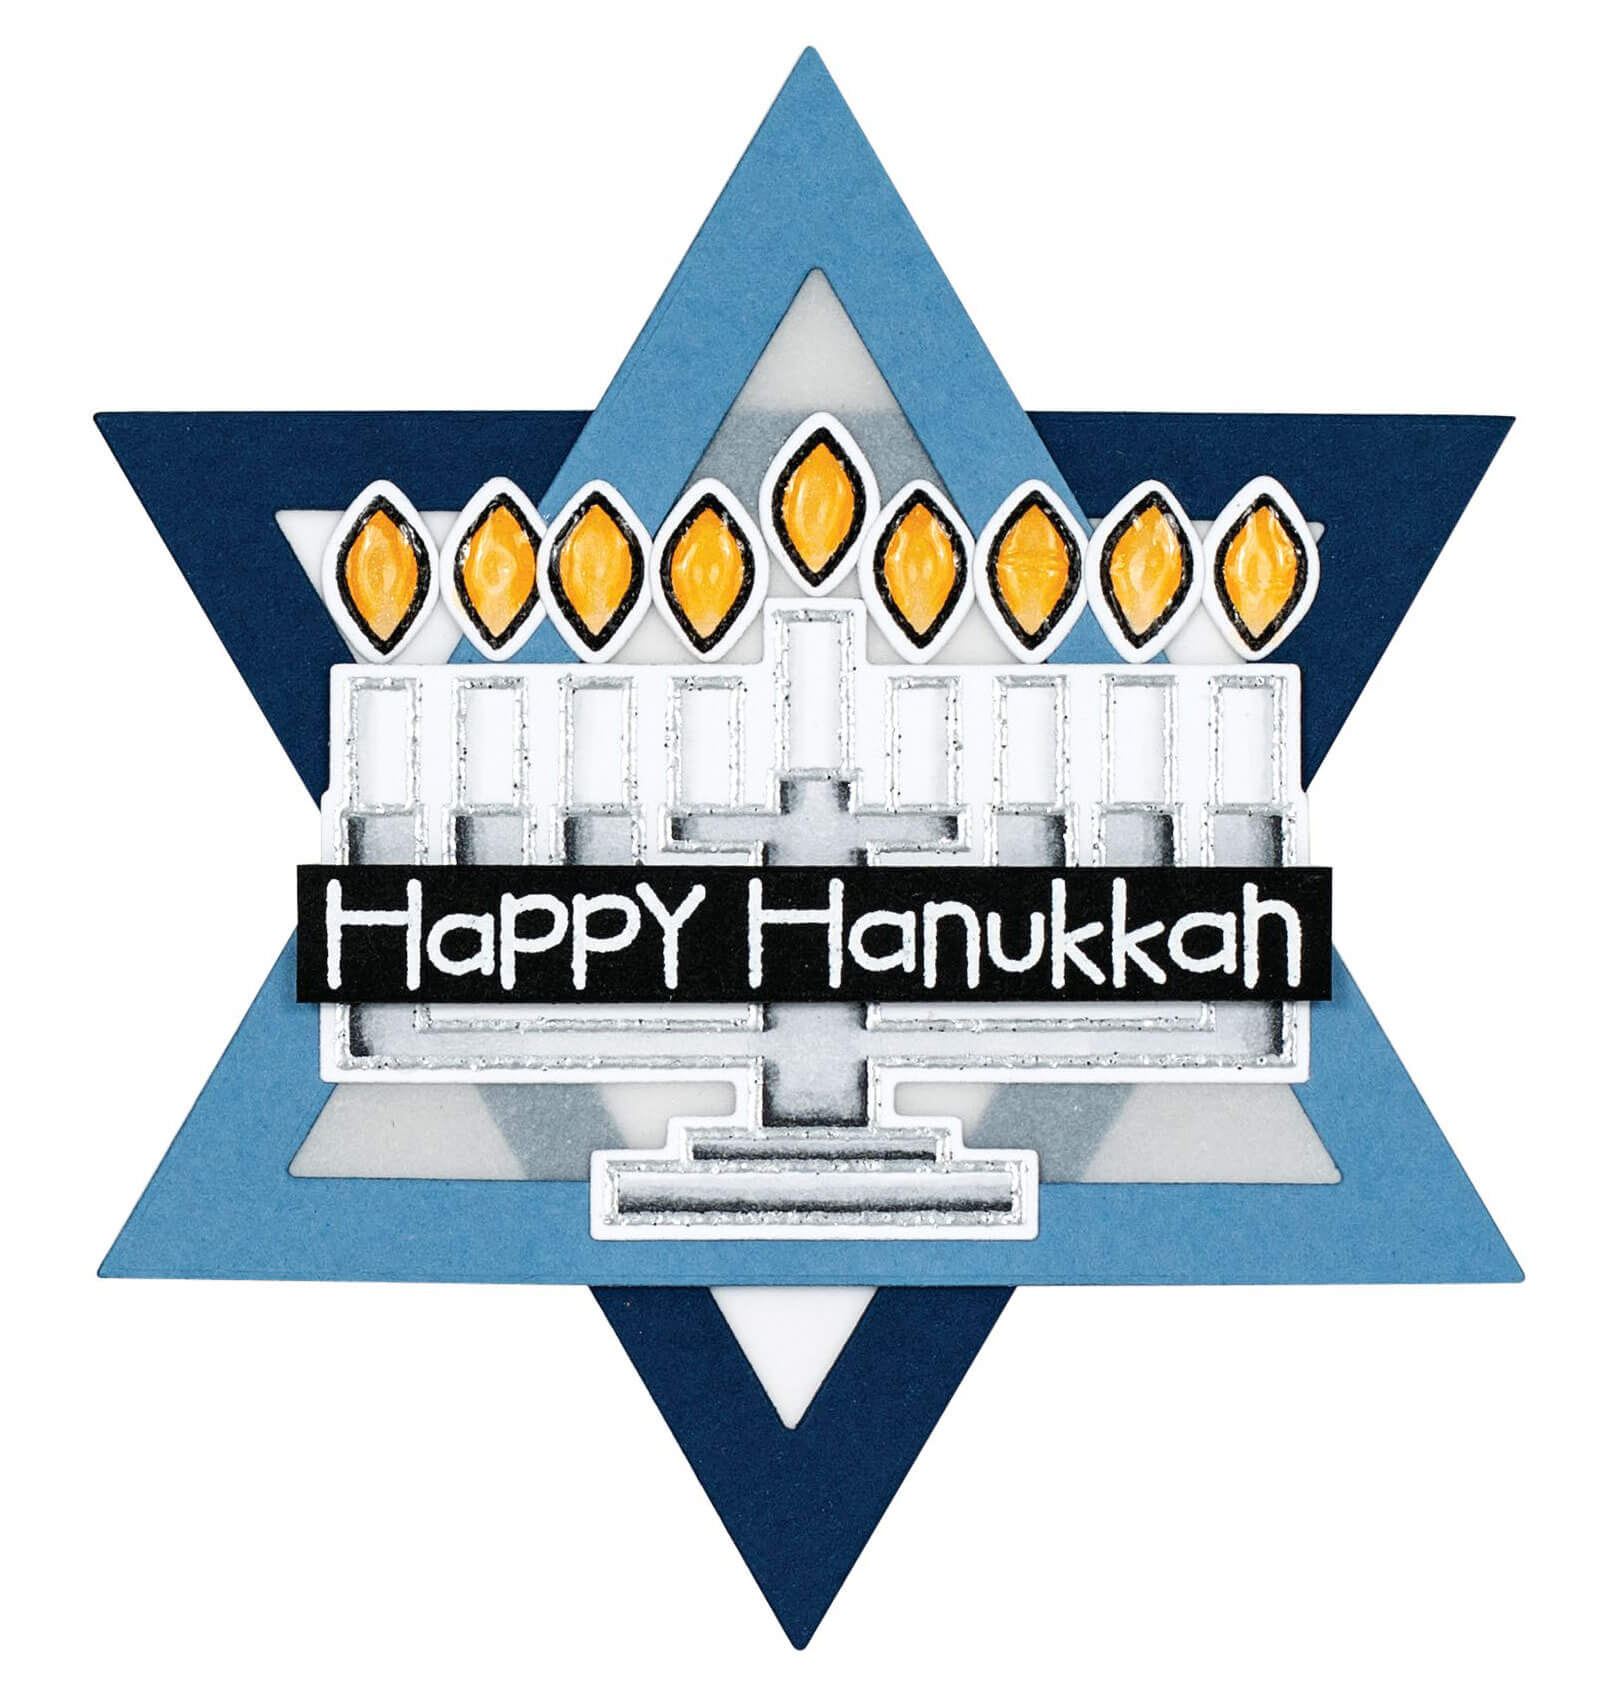 SCT Winter 2018 - Happy Hanukkah by Jessica Frost-Ballas